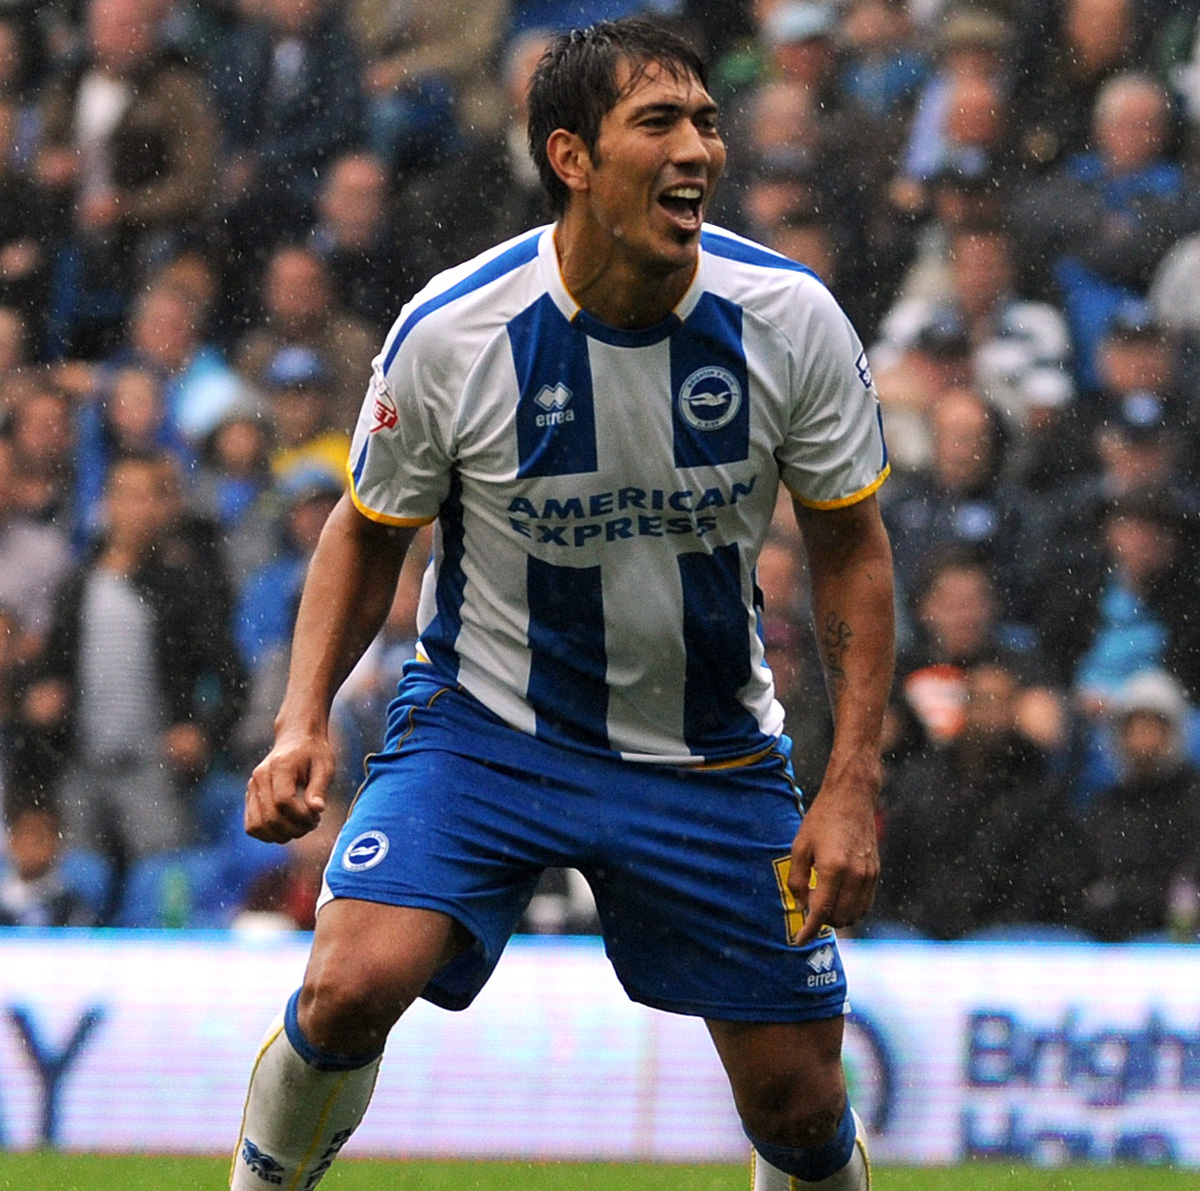 Albion focus turns to new faces as Ulloa prepares to complete record move